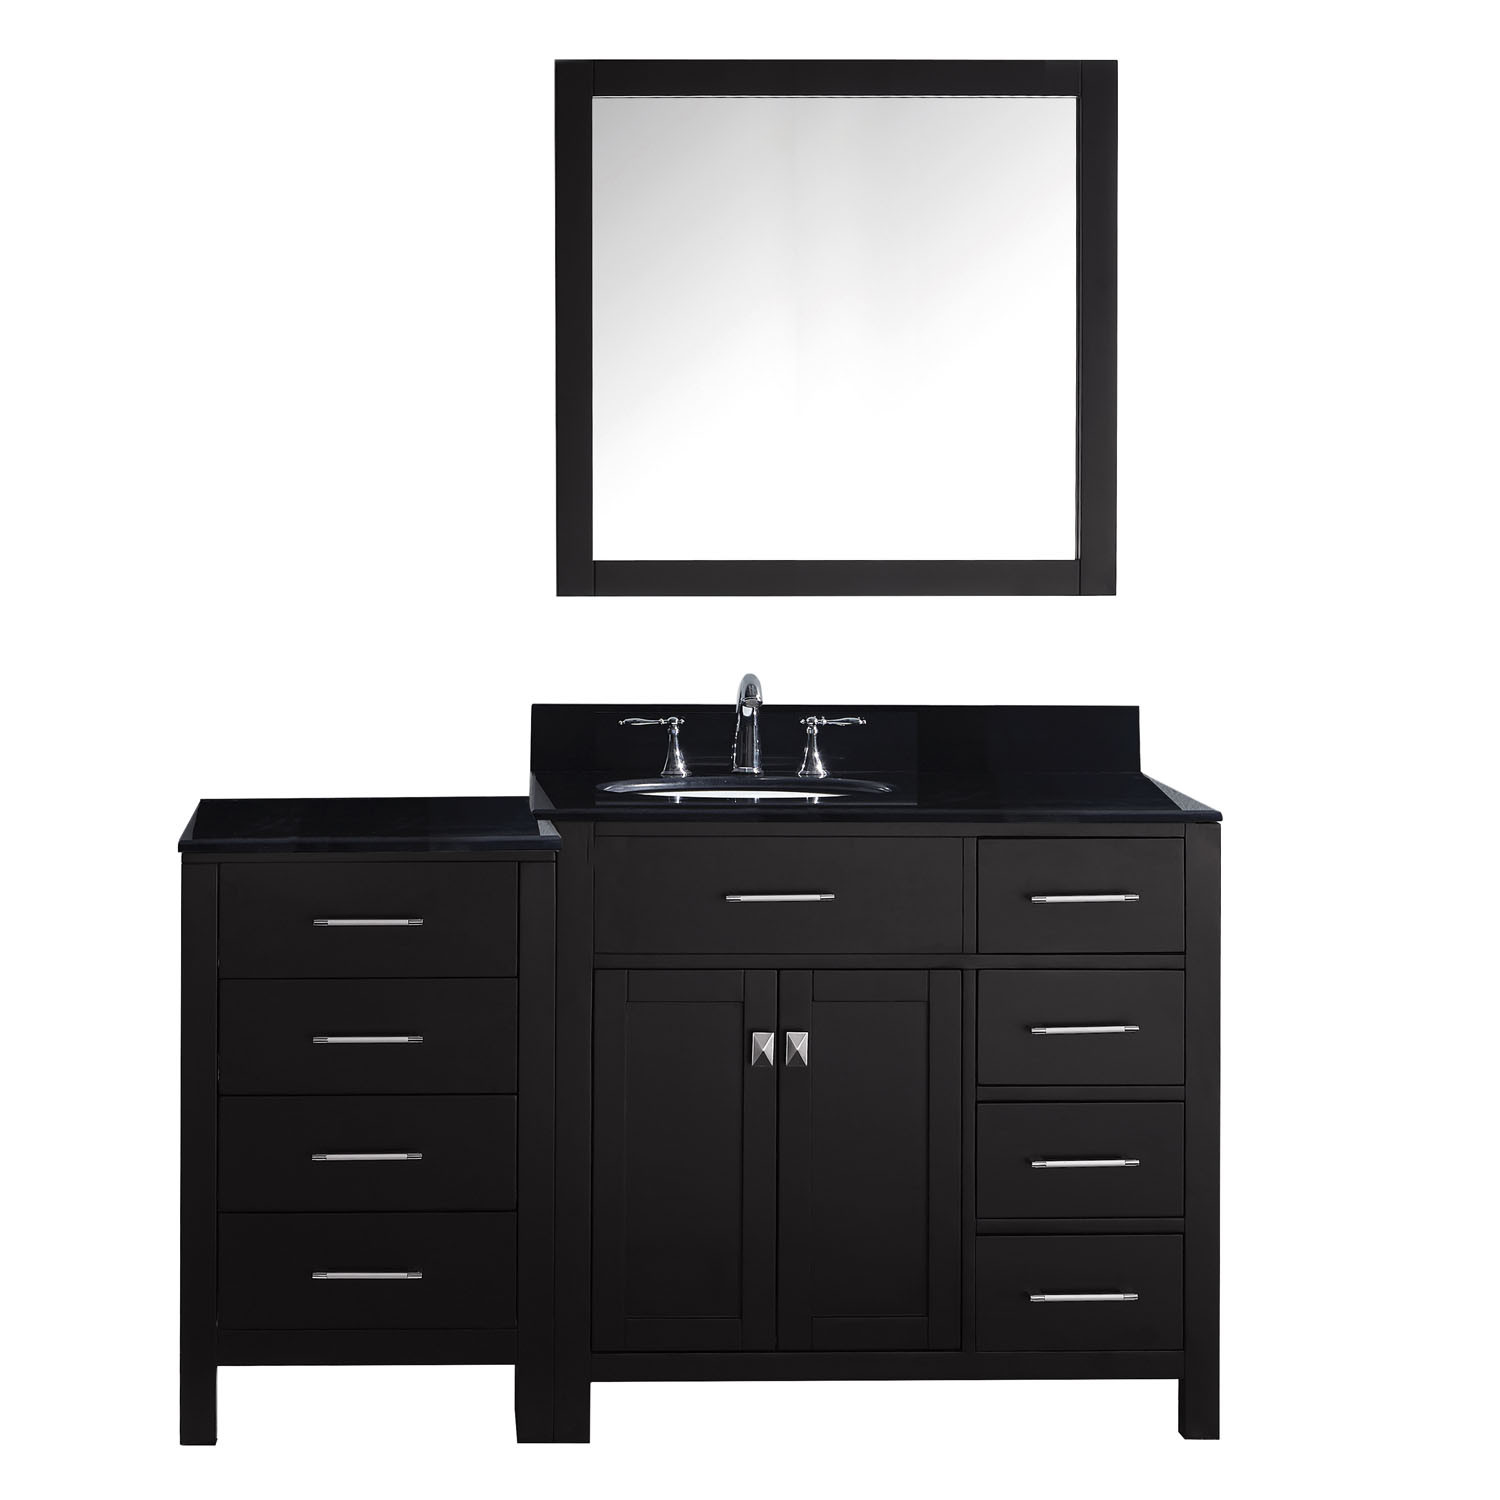 Virtu MS-2157R-BGRO-ES-002 Caroline Parkway 57 Inch Single Bathroom Vanity Set In Espresso